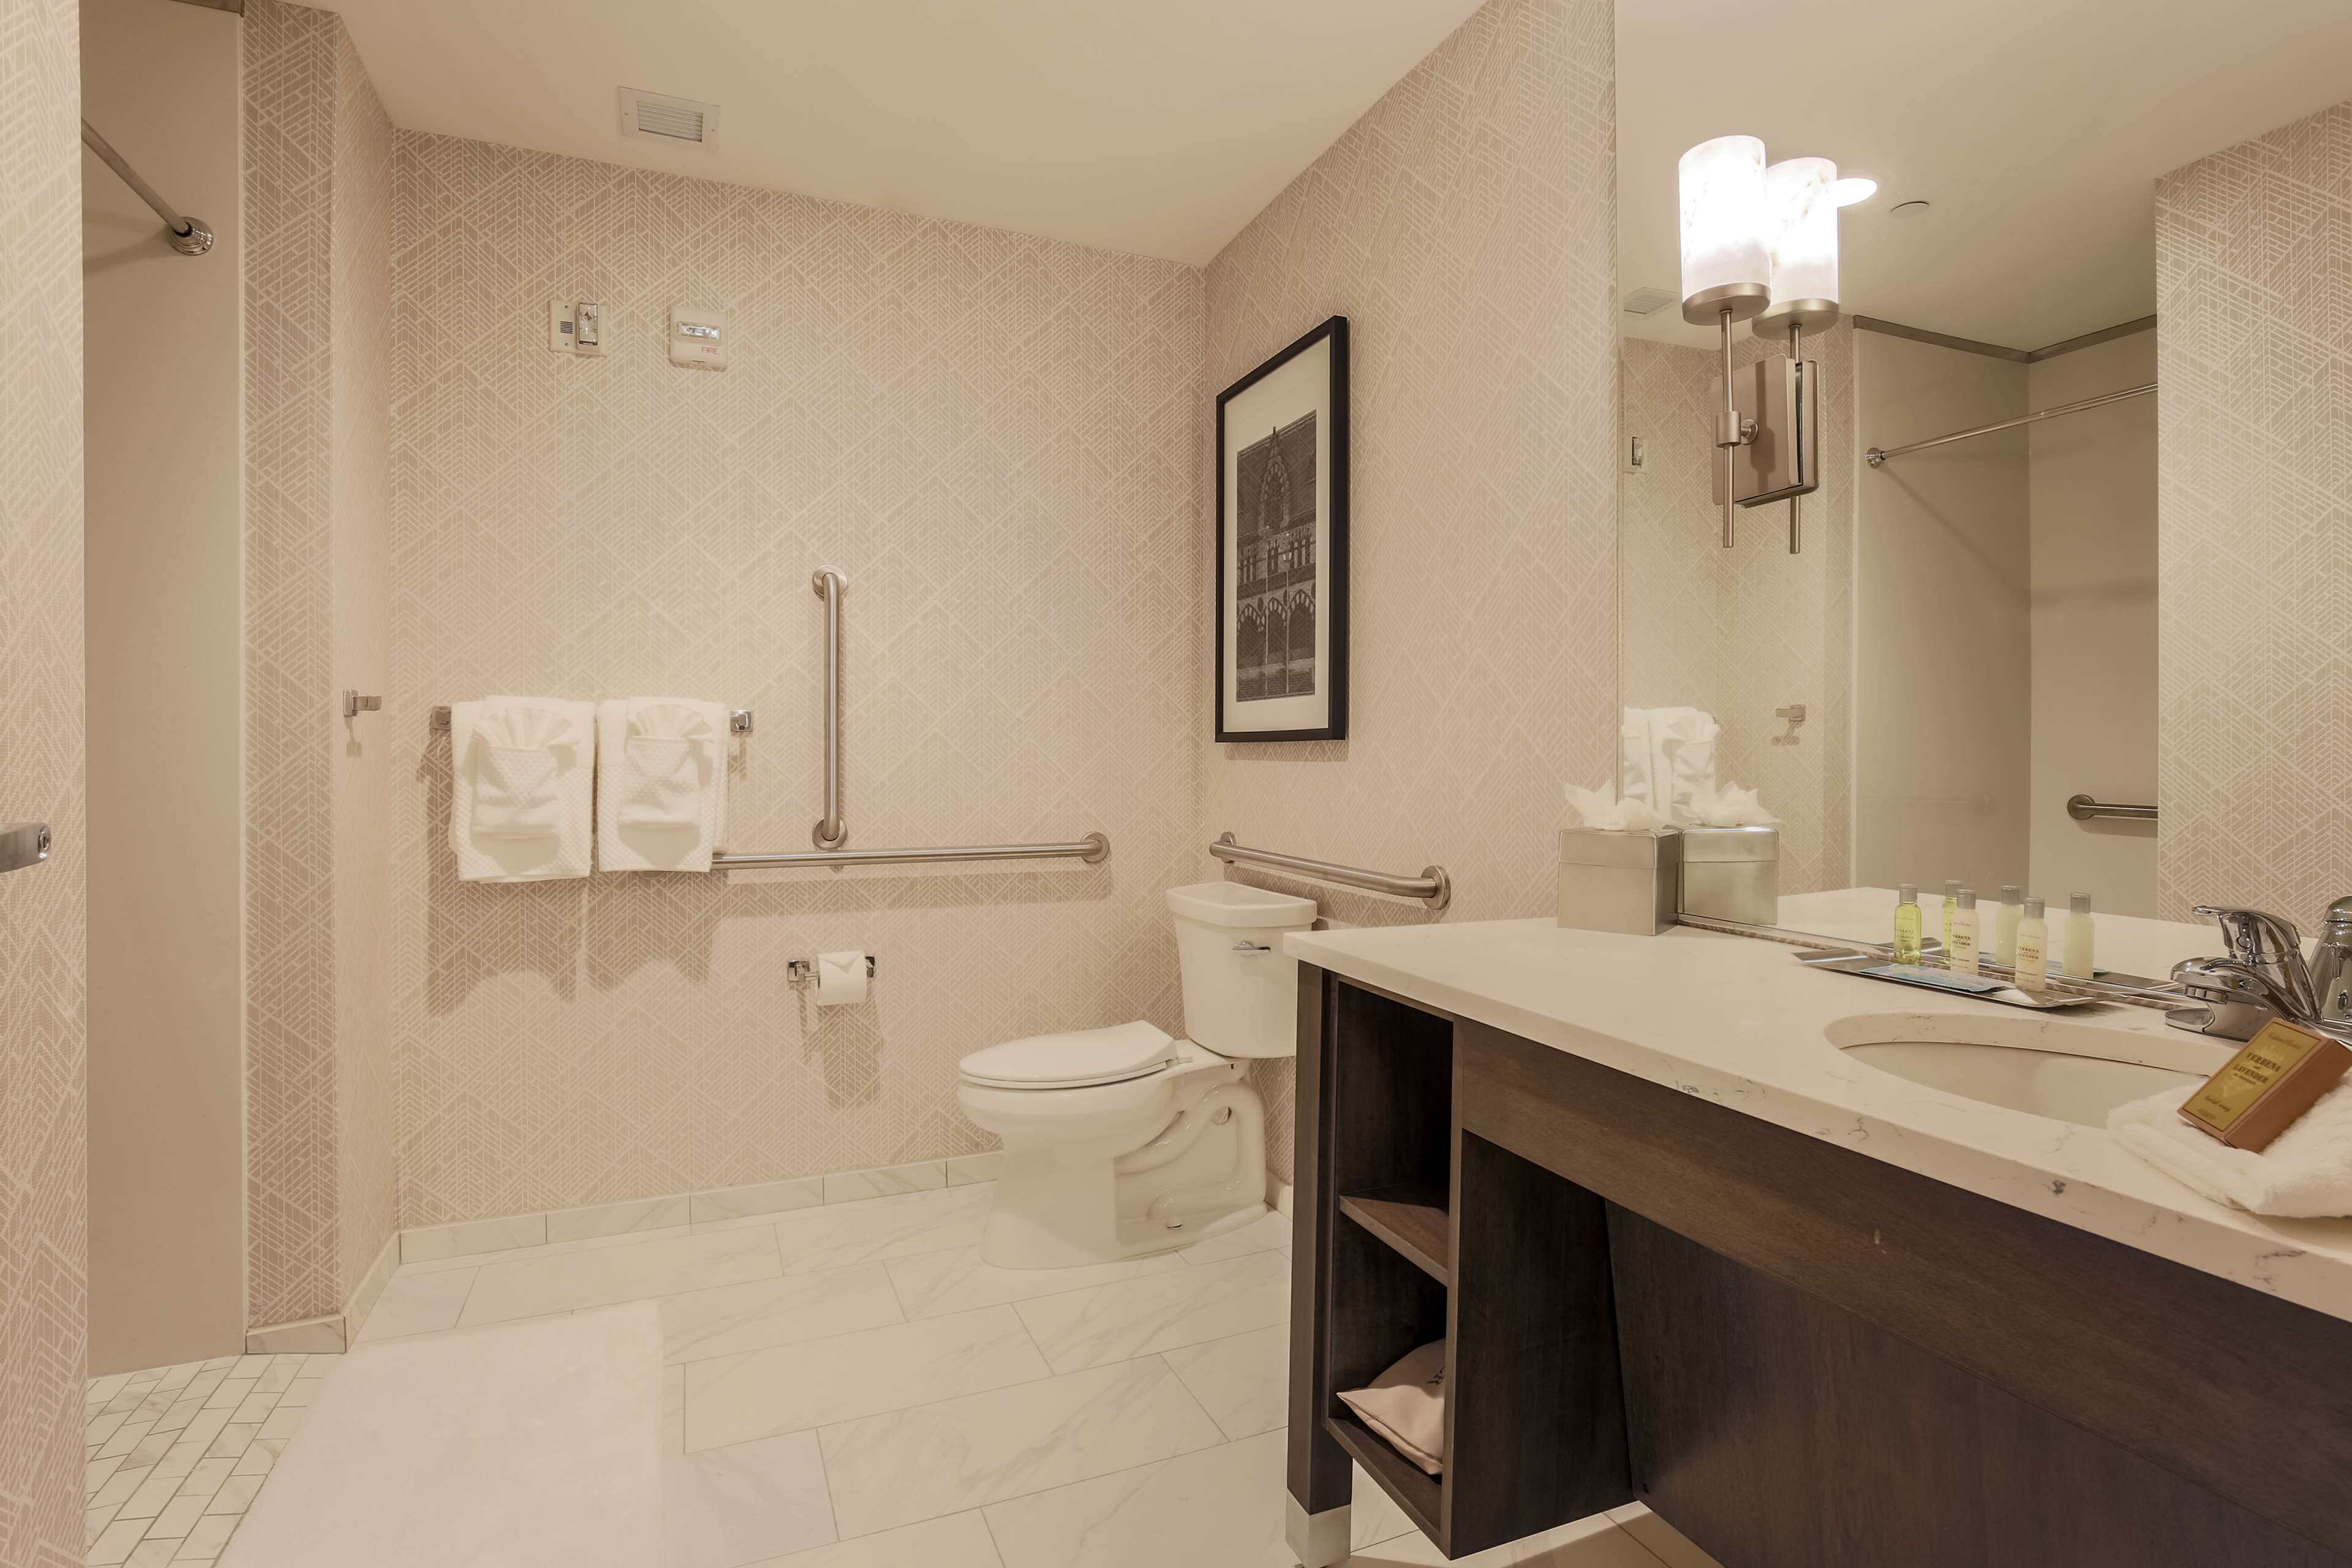 DoubleTree by Hilton Evansville image 21